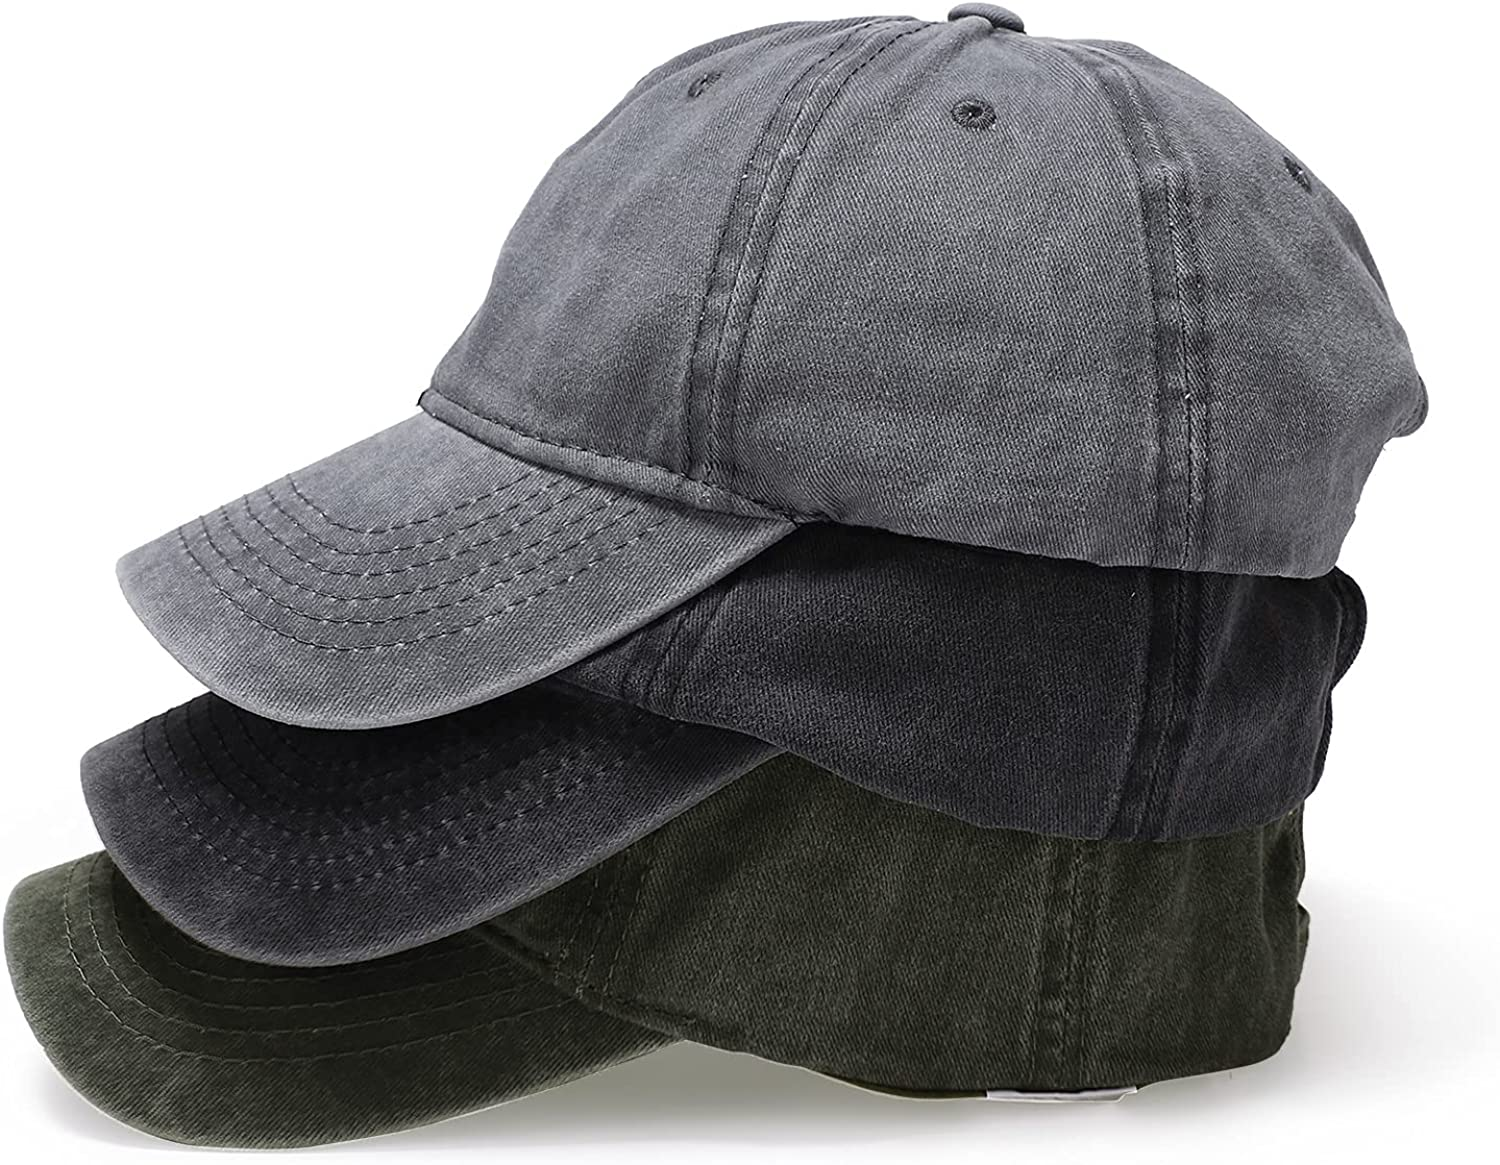 Product Owmido Solid Super popular specialty store Color Baseball Cap and Women's Washed Retro Men's